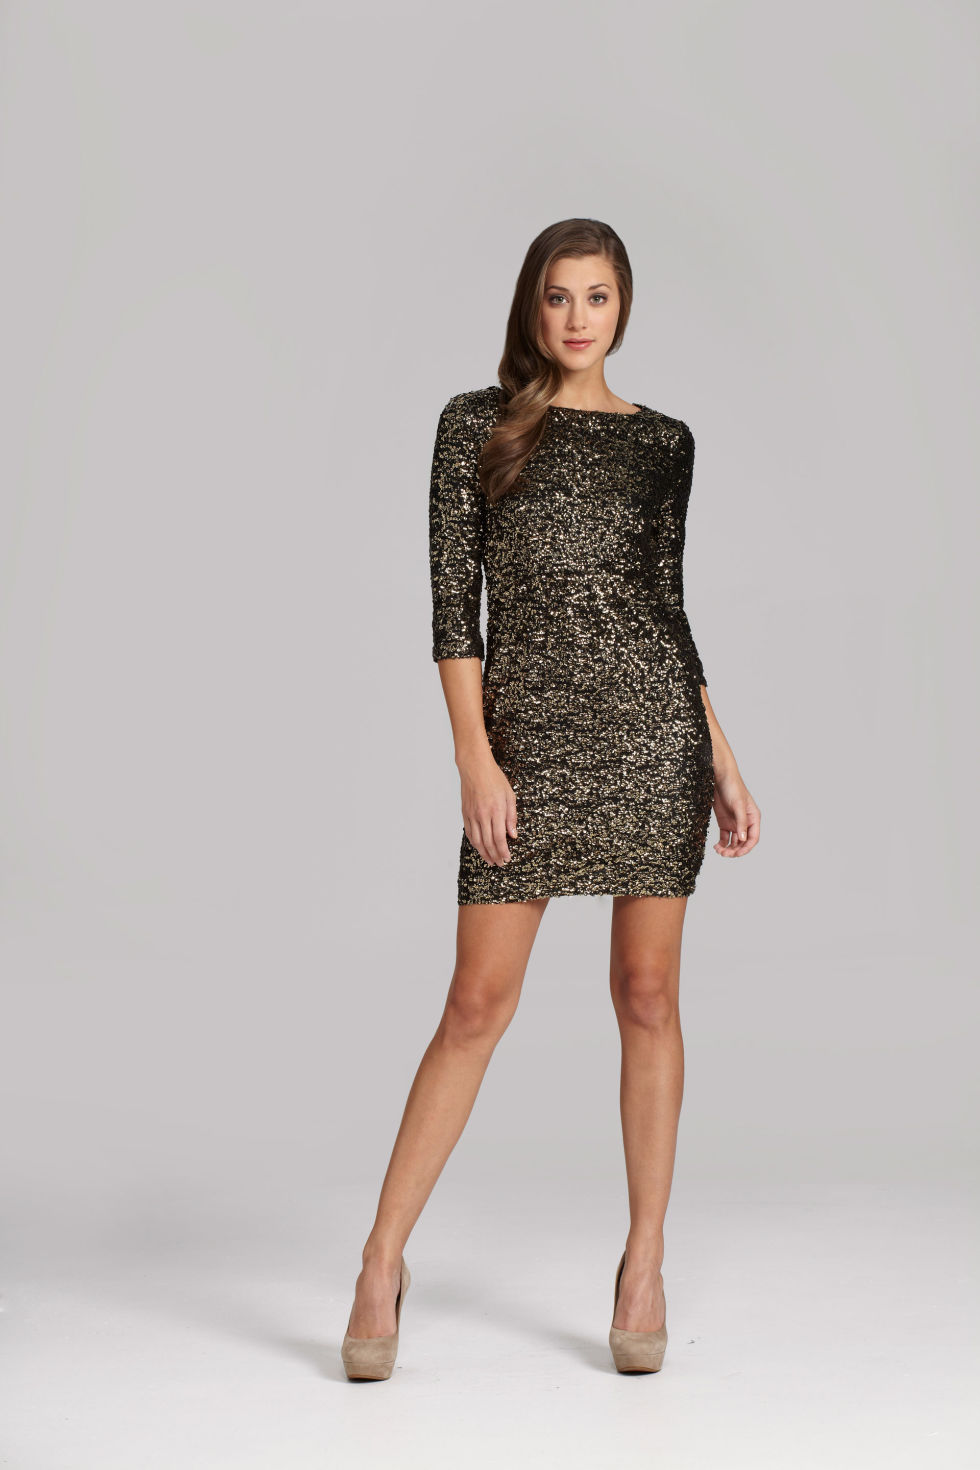 Holiday Party Dresses Under 100 - Womens Holiday Dresses